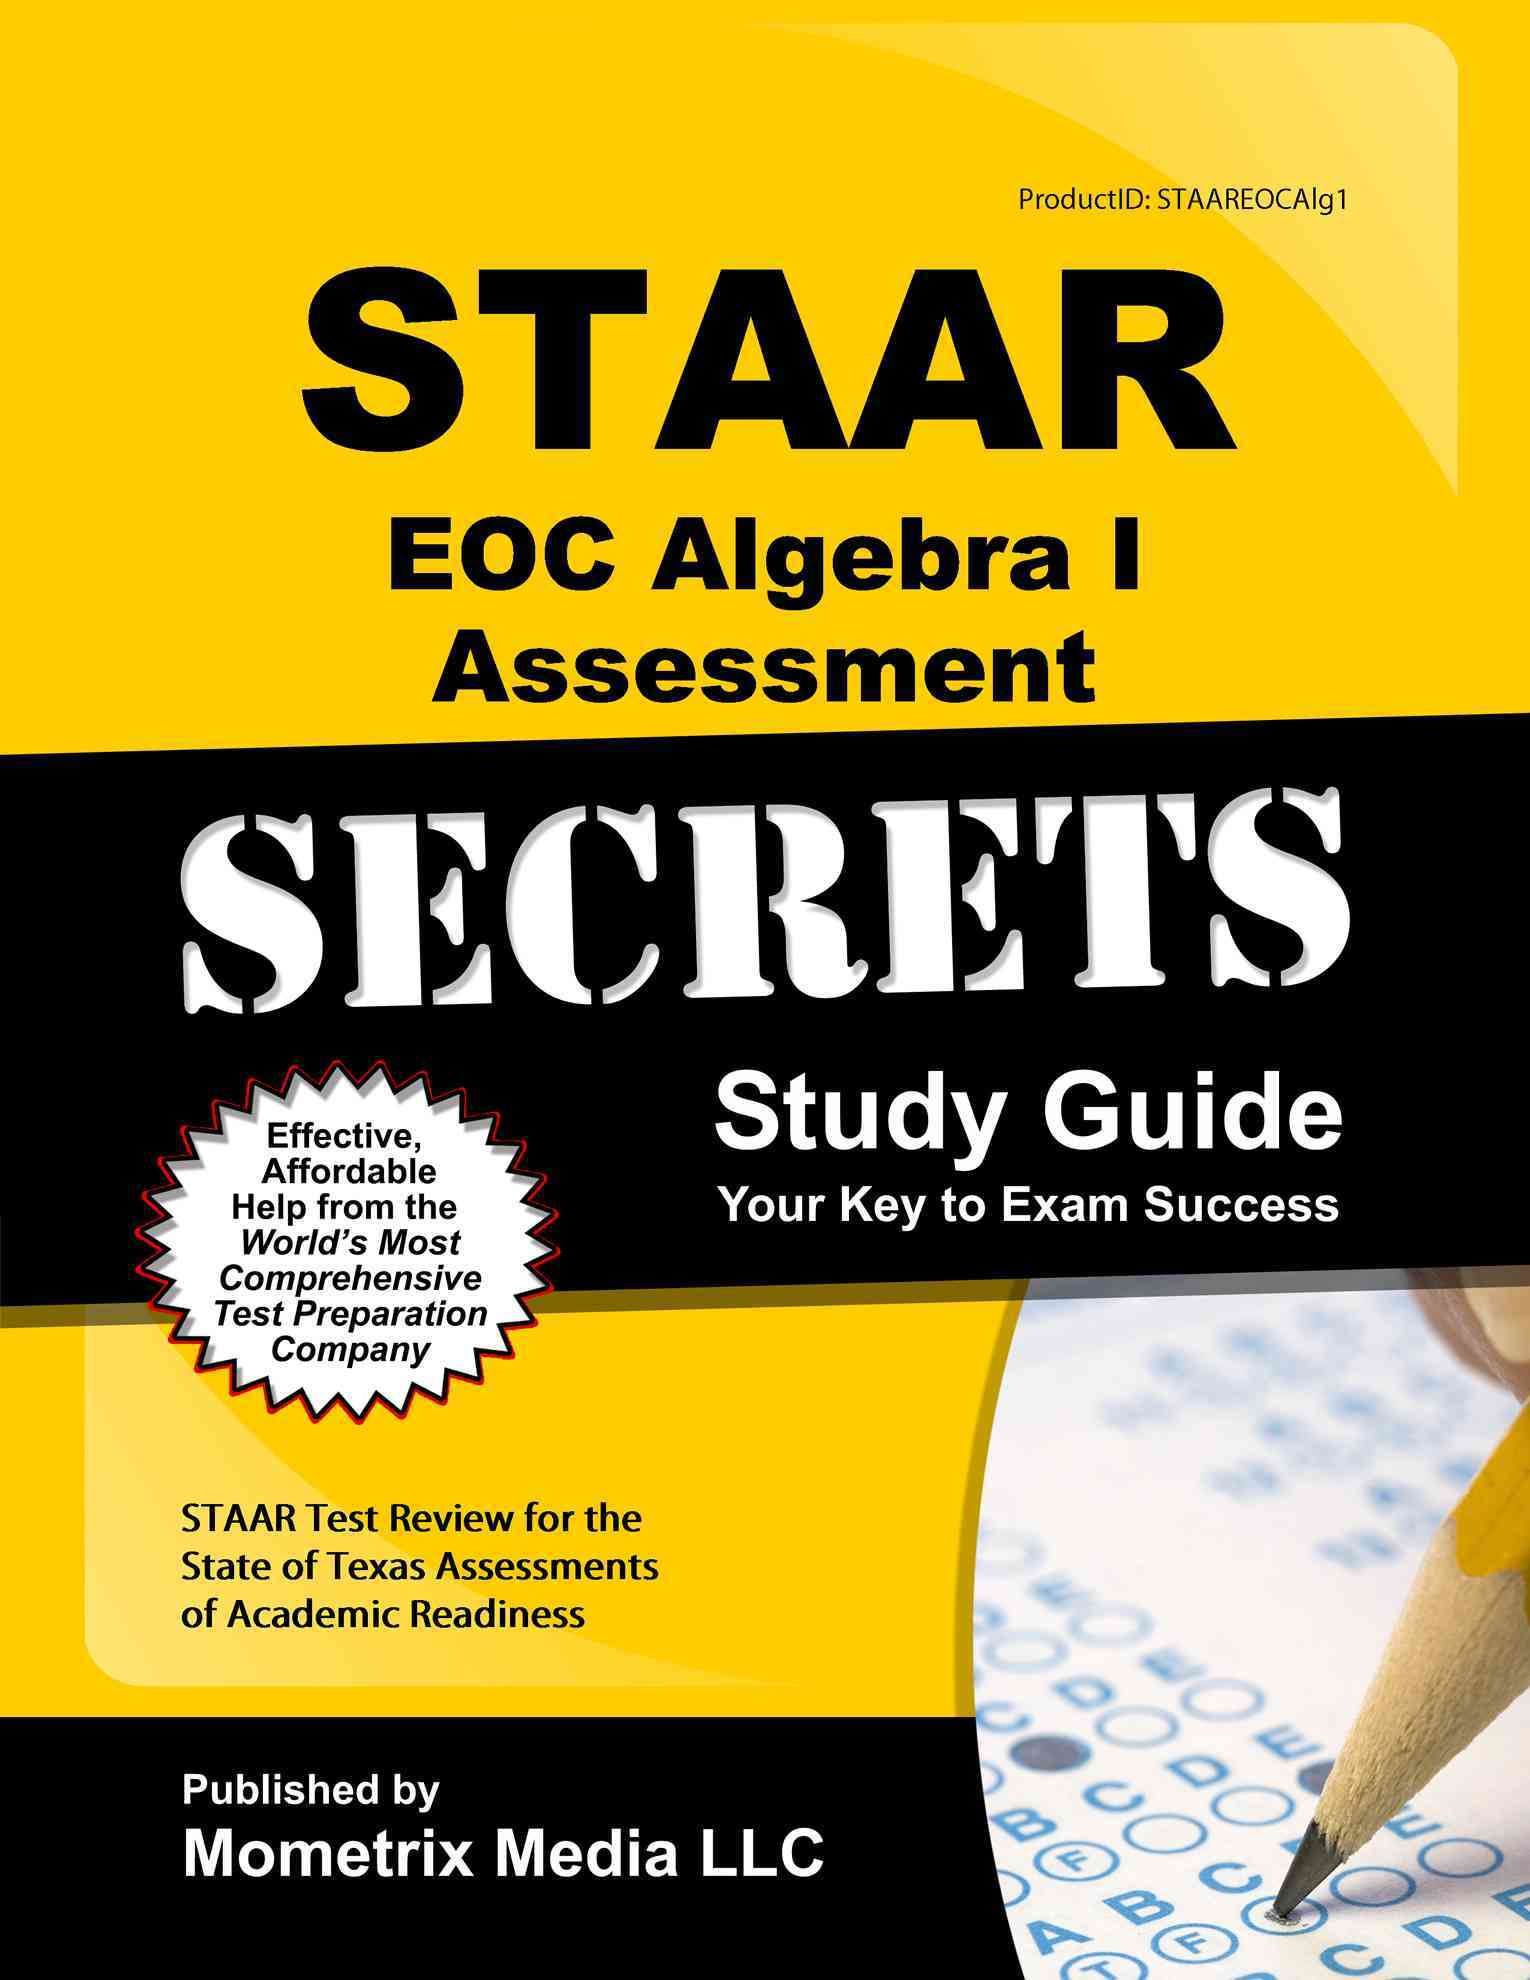 STAAR EOC Algebra I Assessment Secrets Study Guide By Mometrix Media